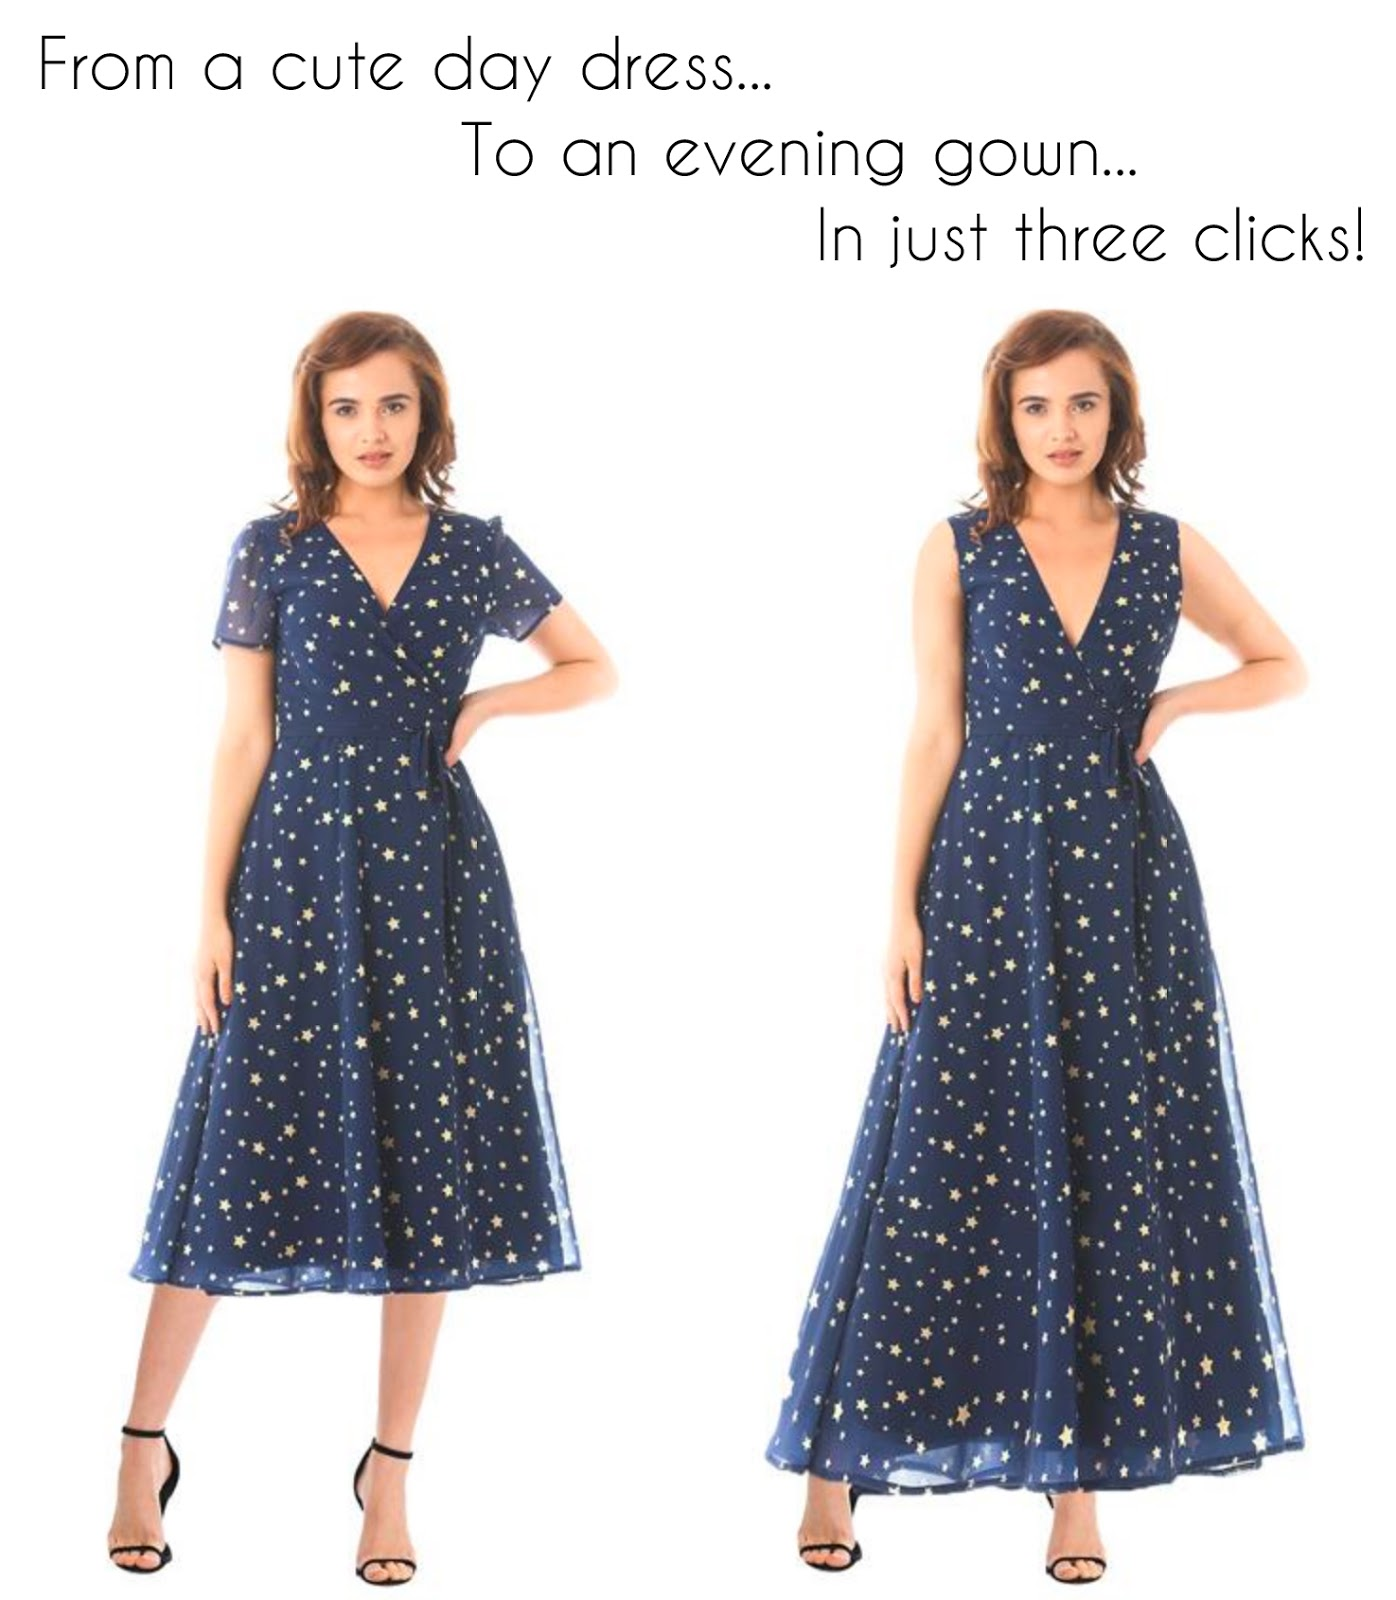 https://www.eshakti.com/shop/Dresses/Star-print-georgette-midi-wrap-dress-CL0051210